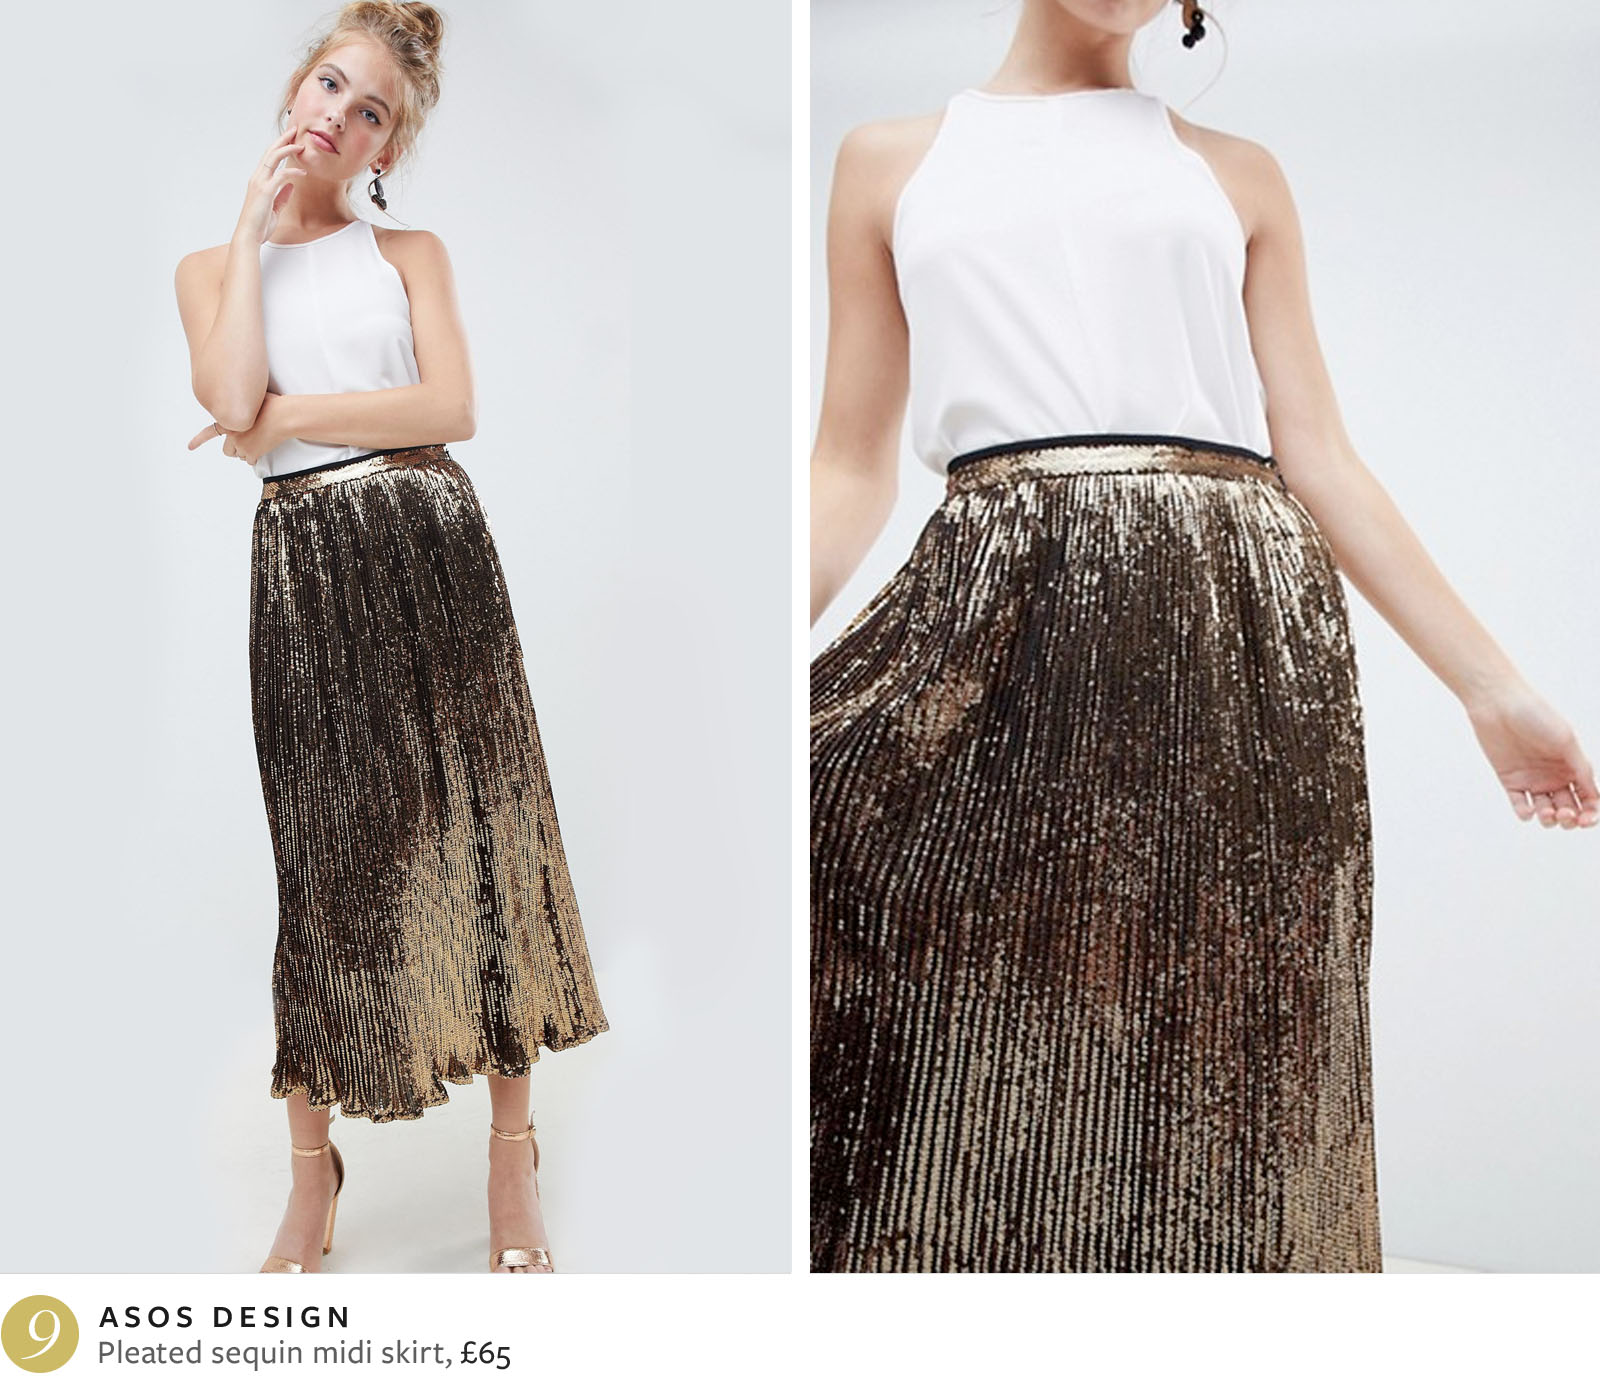 ASOS pleated sequin midi skirt